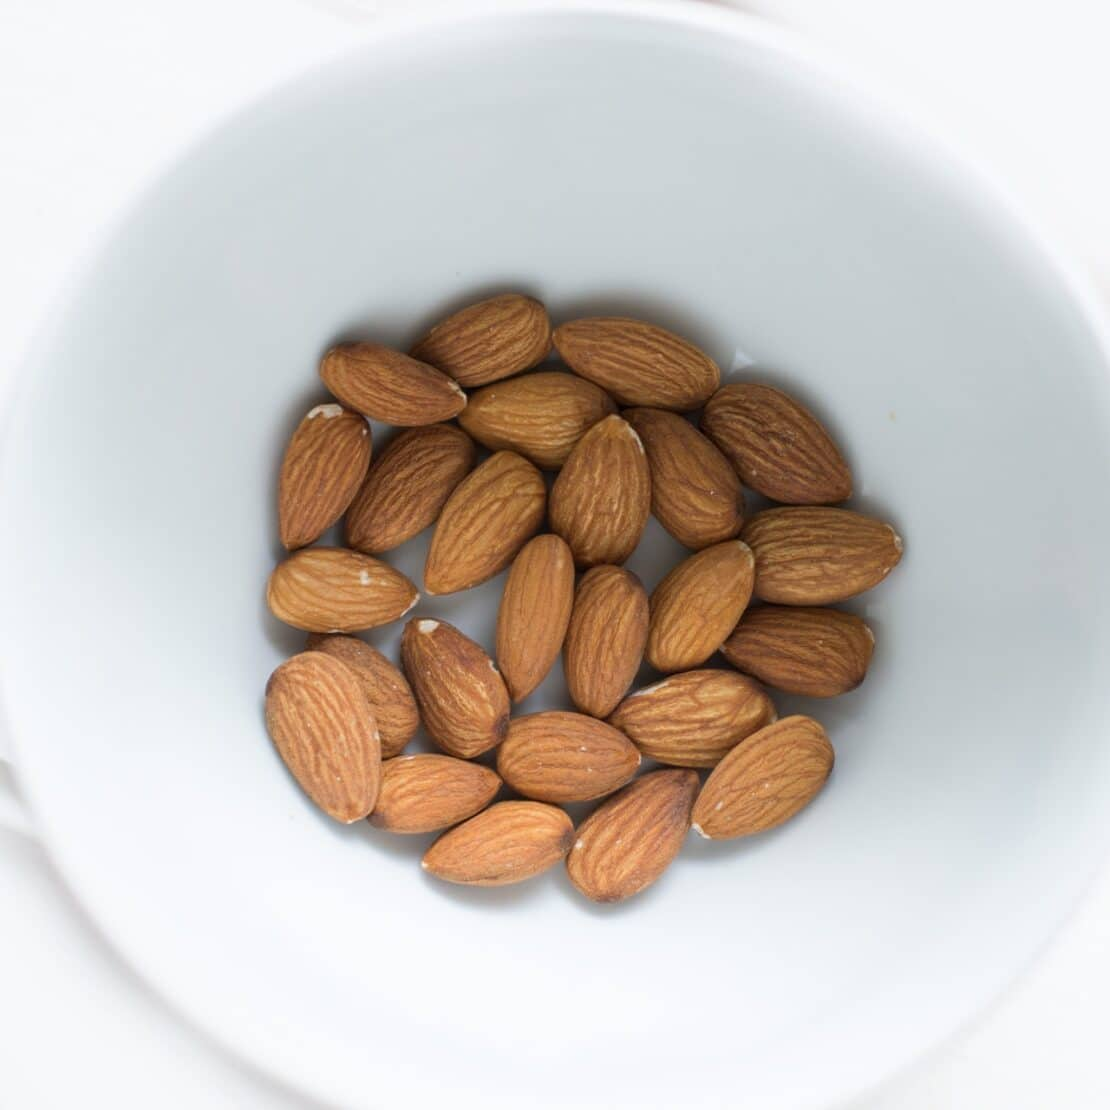 Picture of almonds.